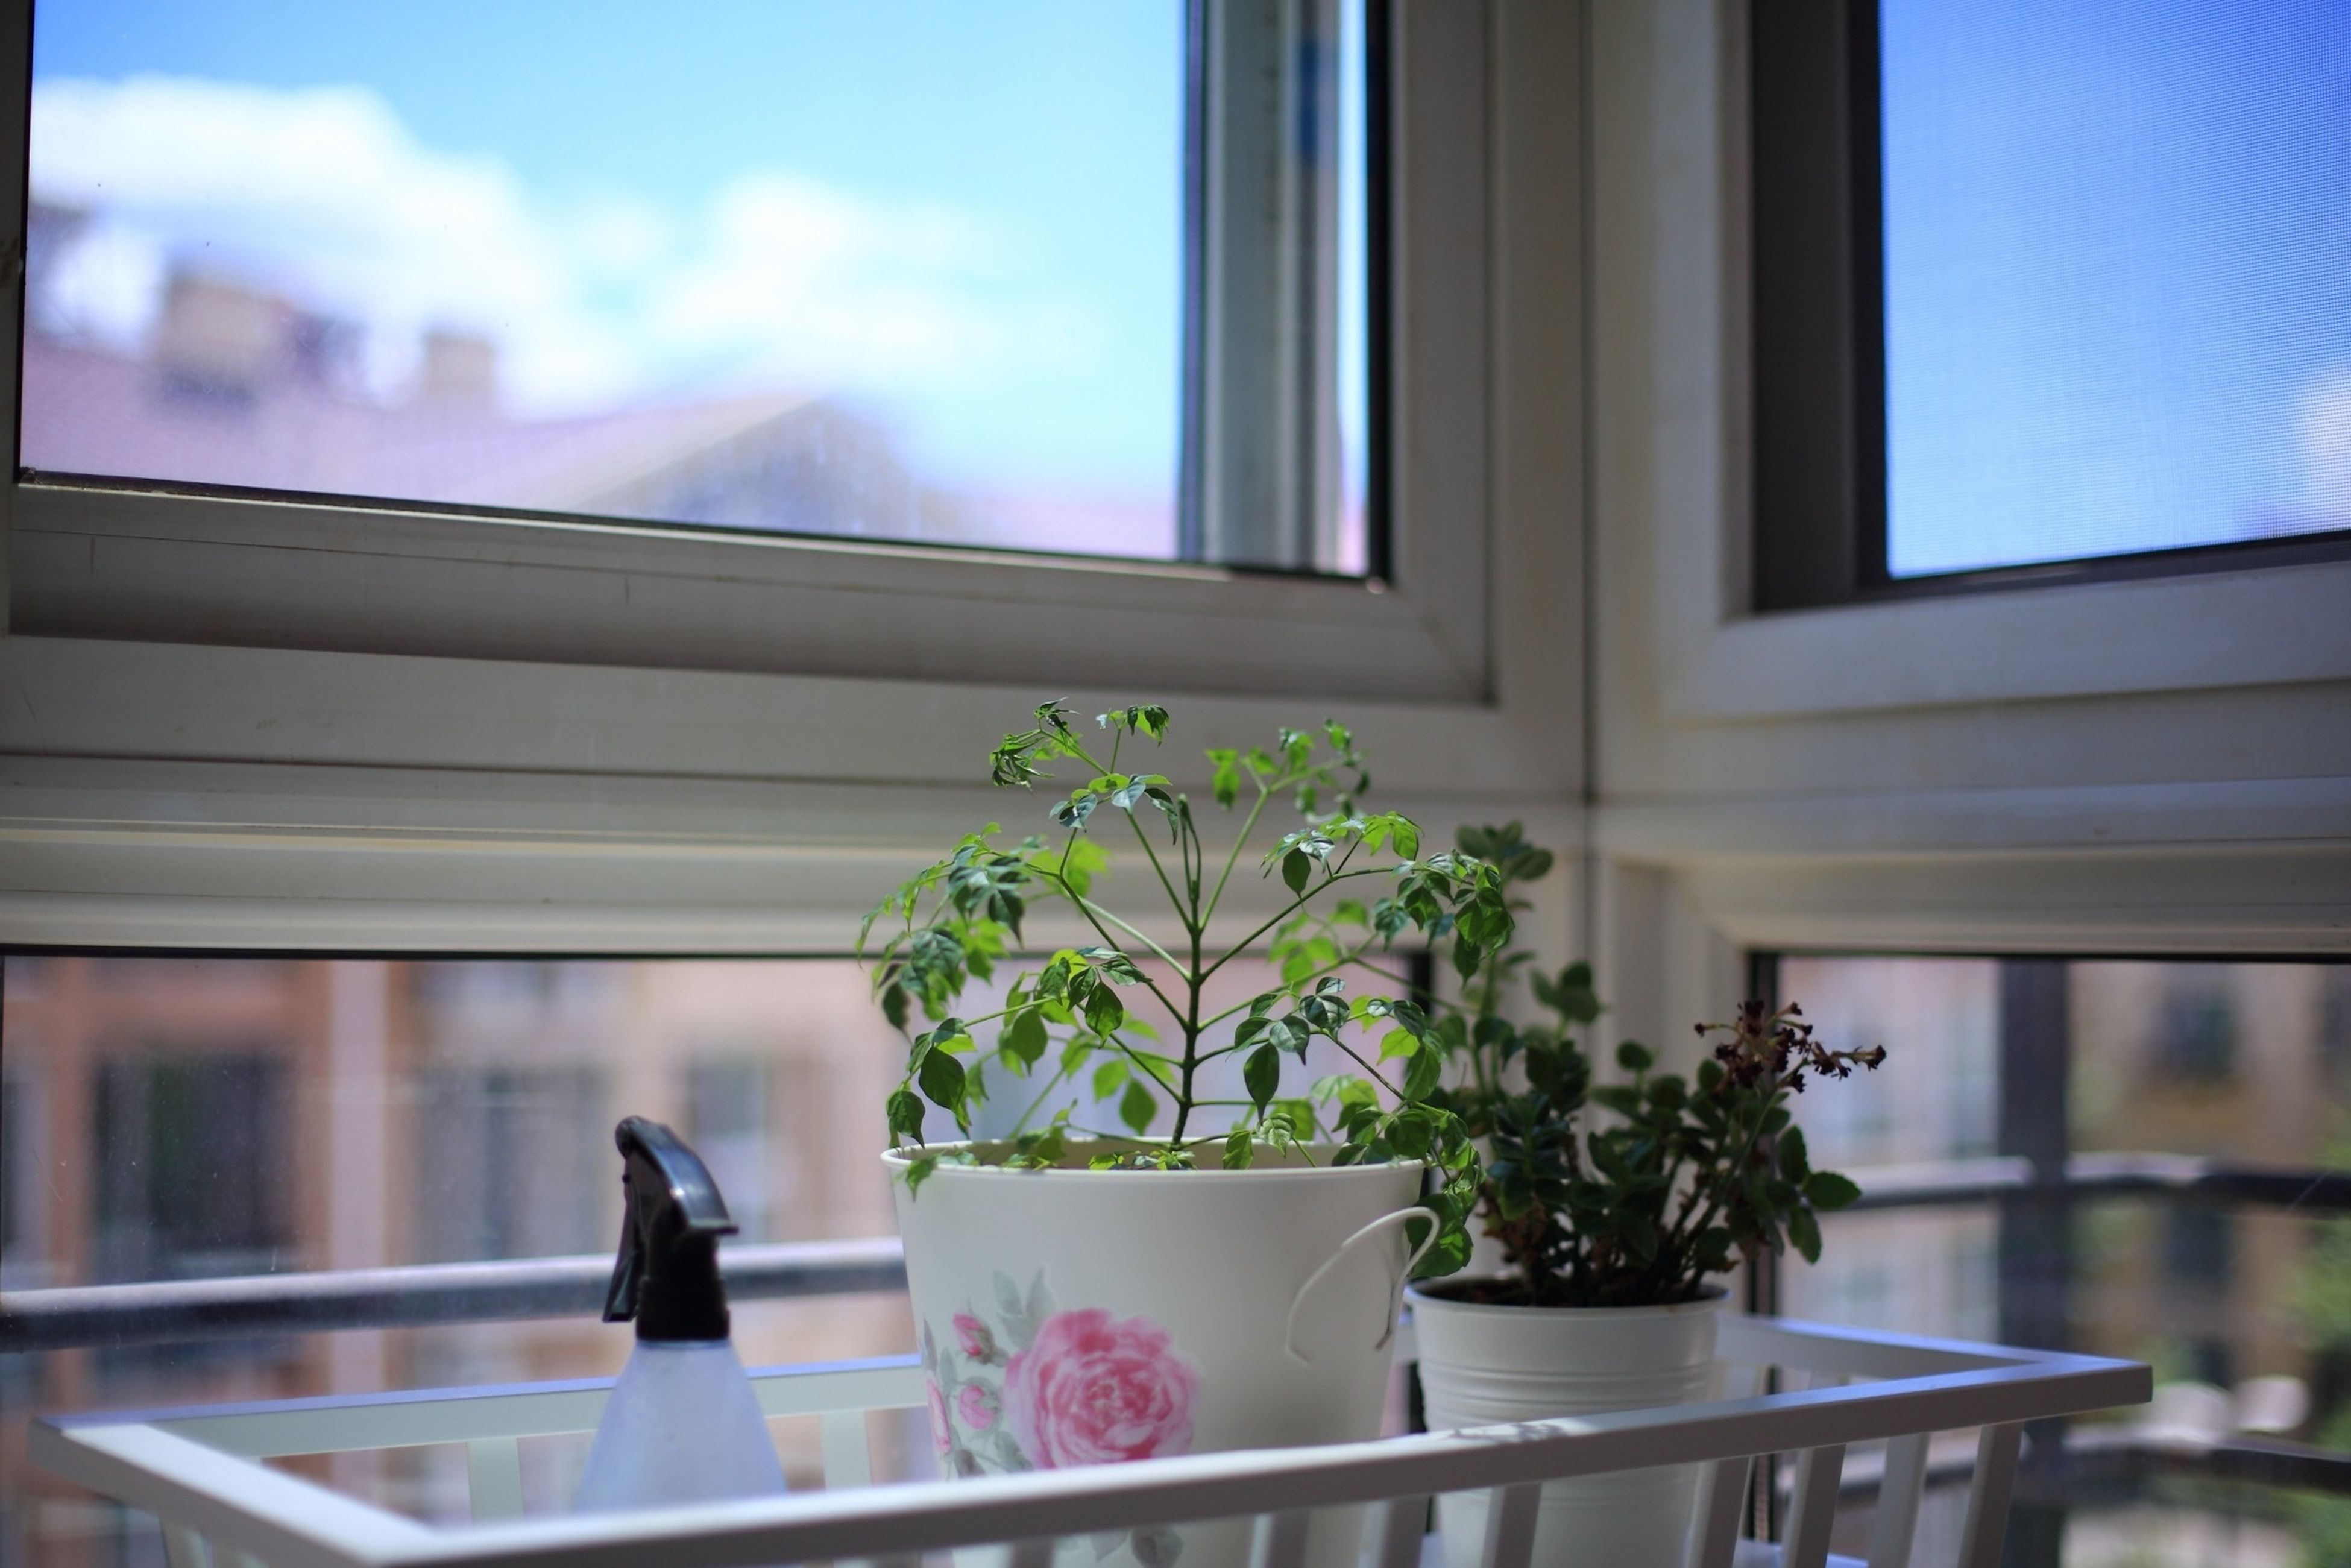 window, window sill, indoors, glass - material, potted plant, flower, transparent, architecture, built structure, sky, plant, building exterior, home interior, balcony, house, glass, curtain, animal themes, day, one animal